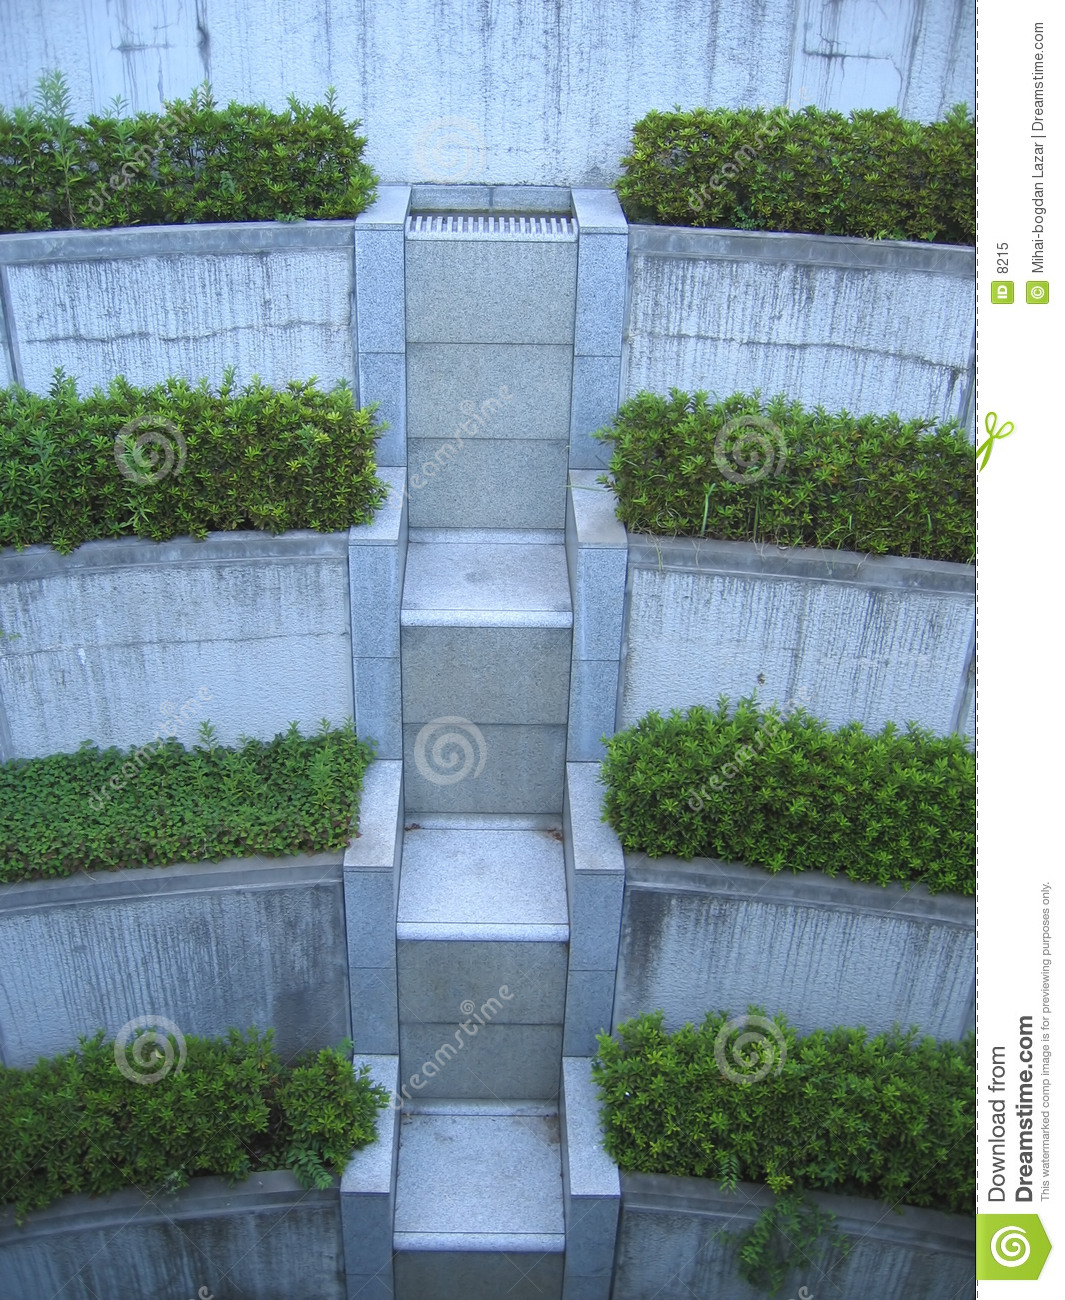 Stairs of Vegetation